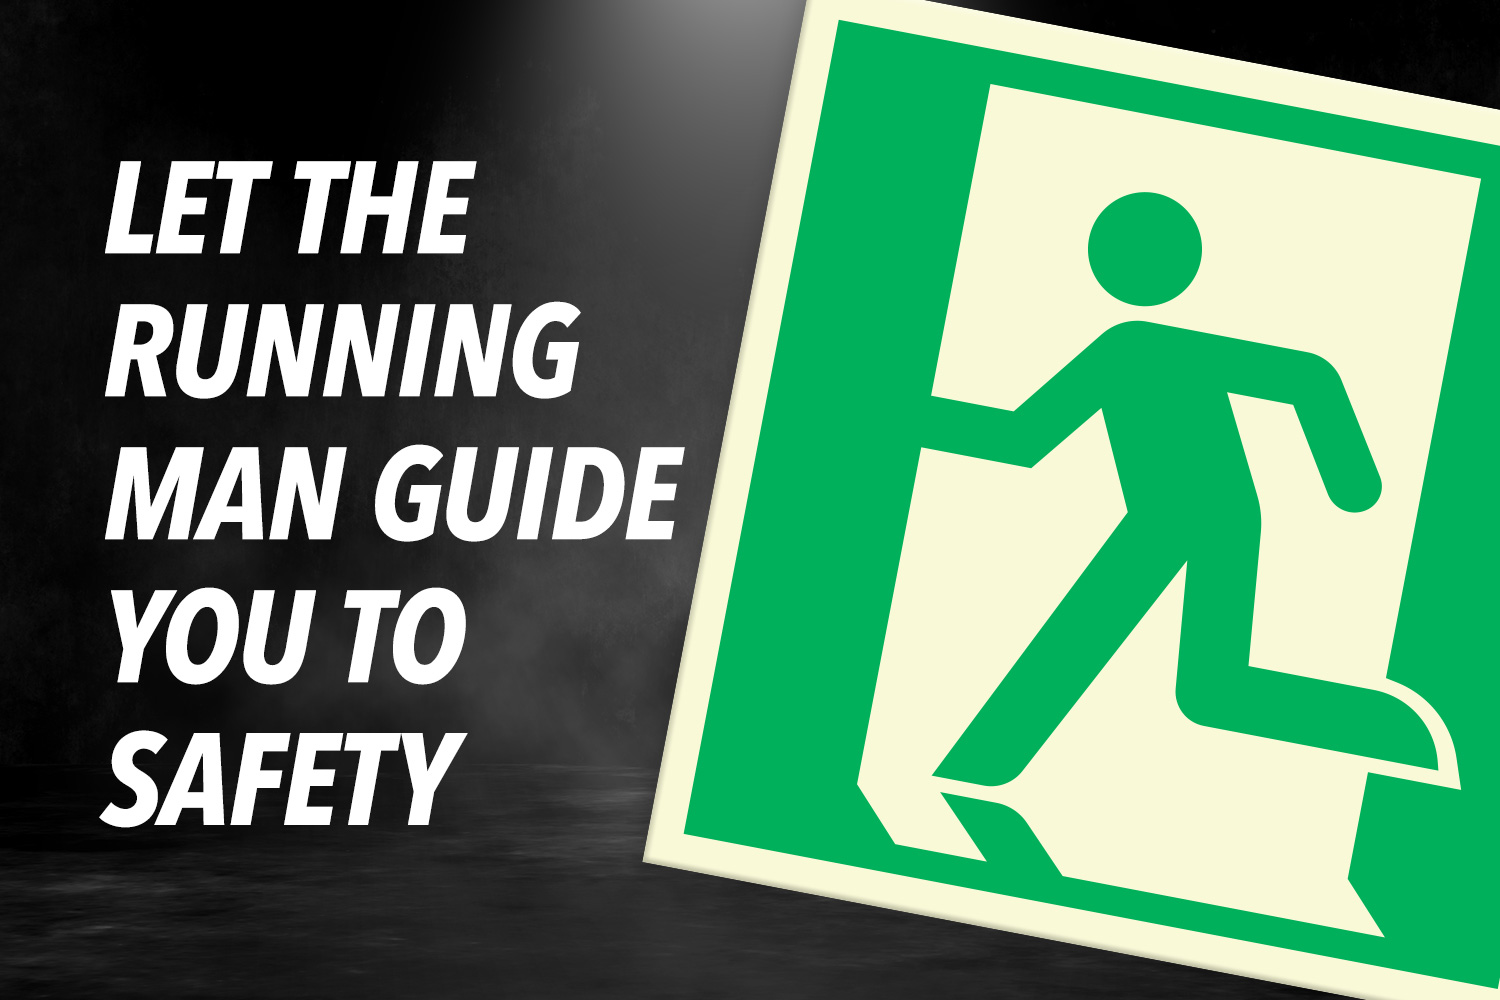 Let the Running Man Guide you to Safety